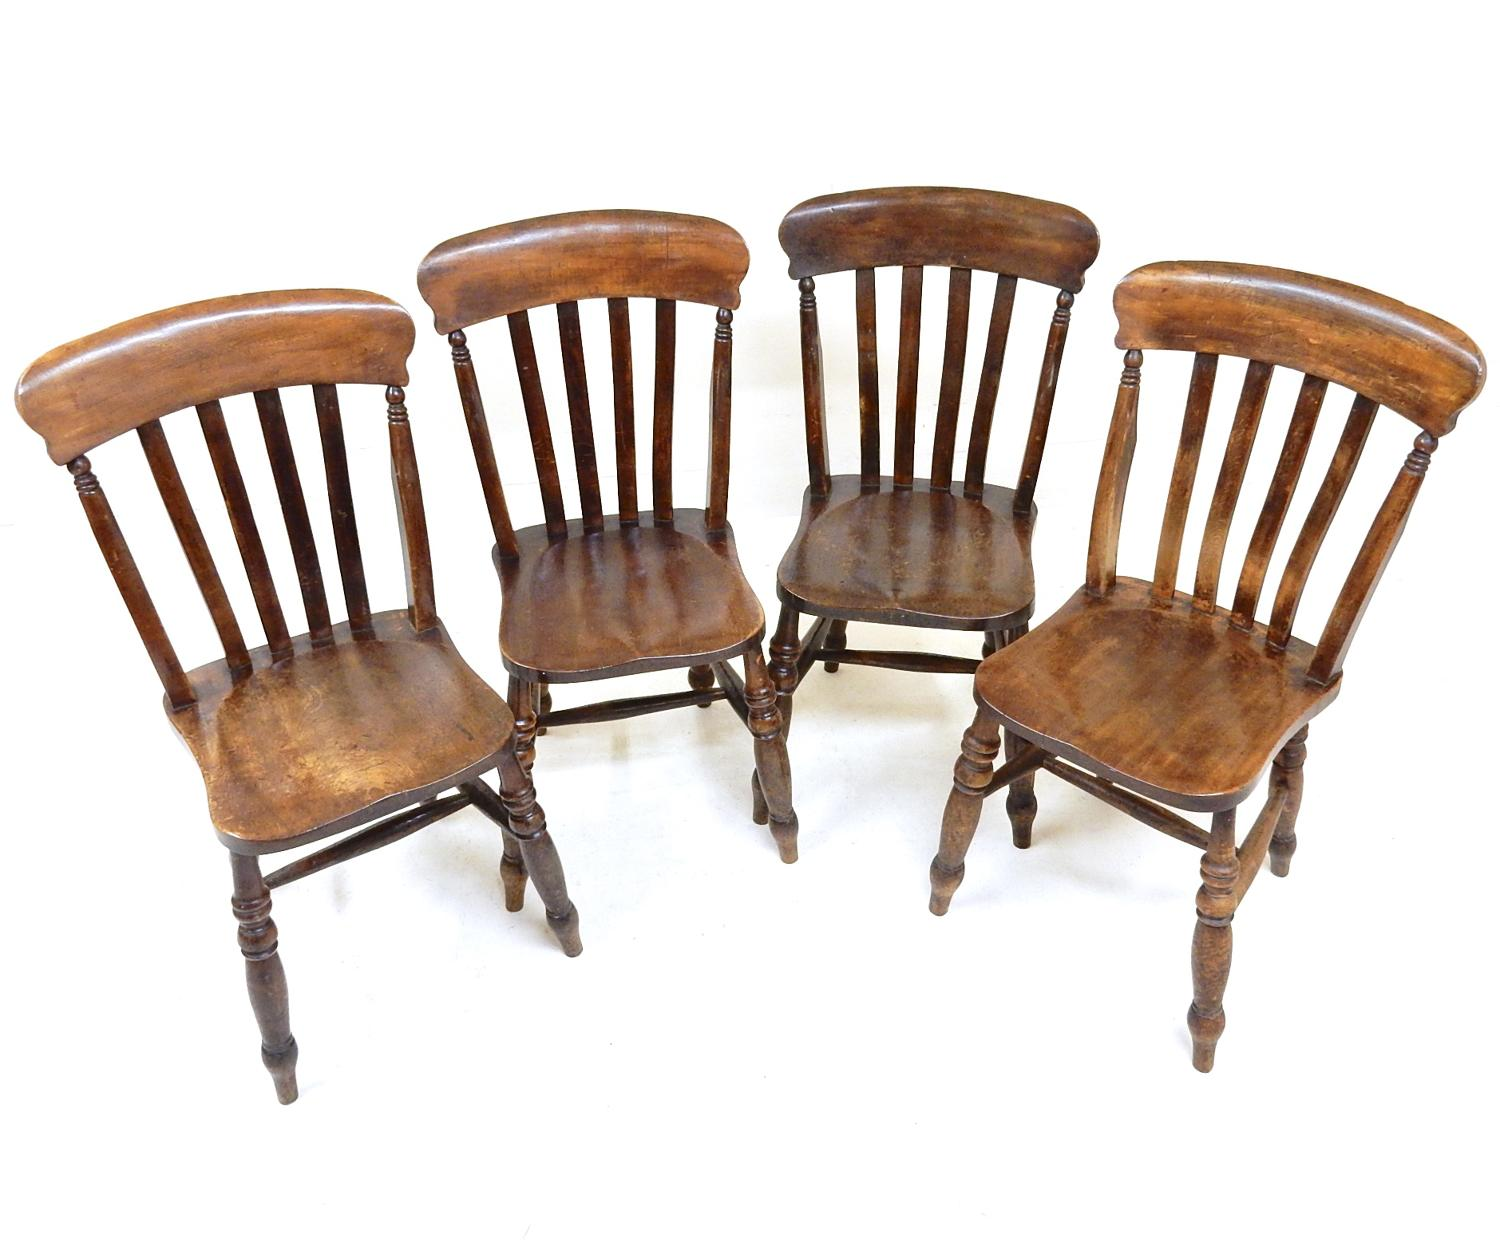 Antique Kitchen Chairs Antique Kitchen Dining Chairs In Tables And Chairs - Antique Kitchen Chairs - 28 Images - Ten Country Ibex Antique